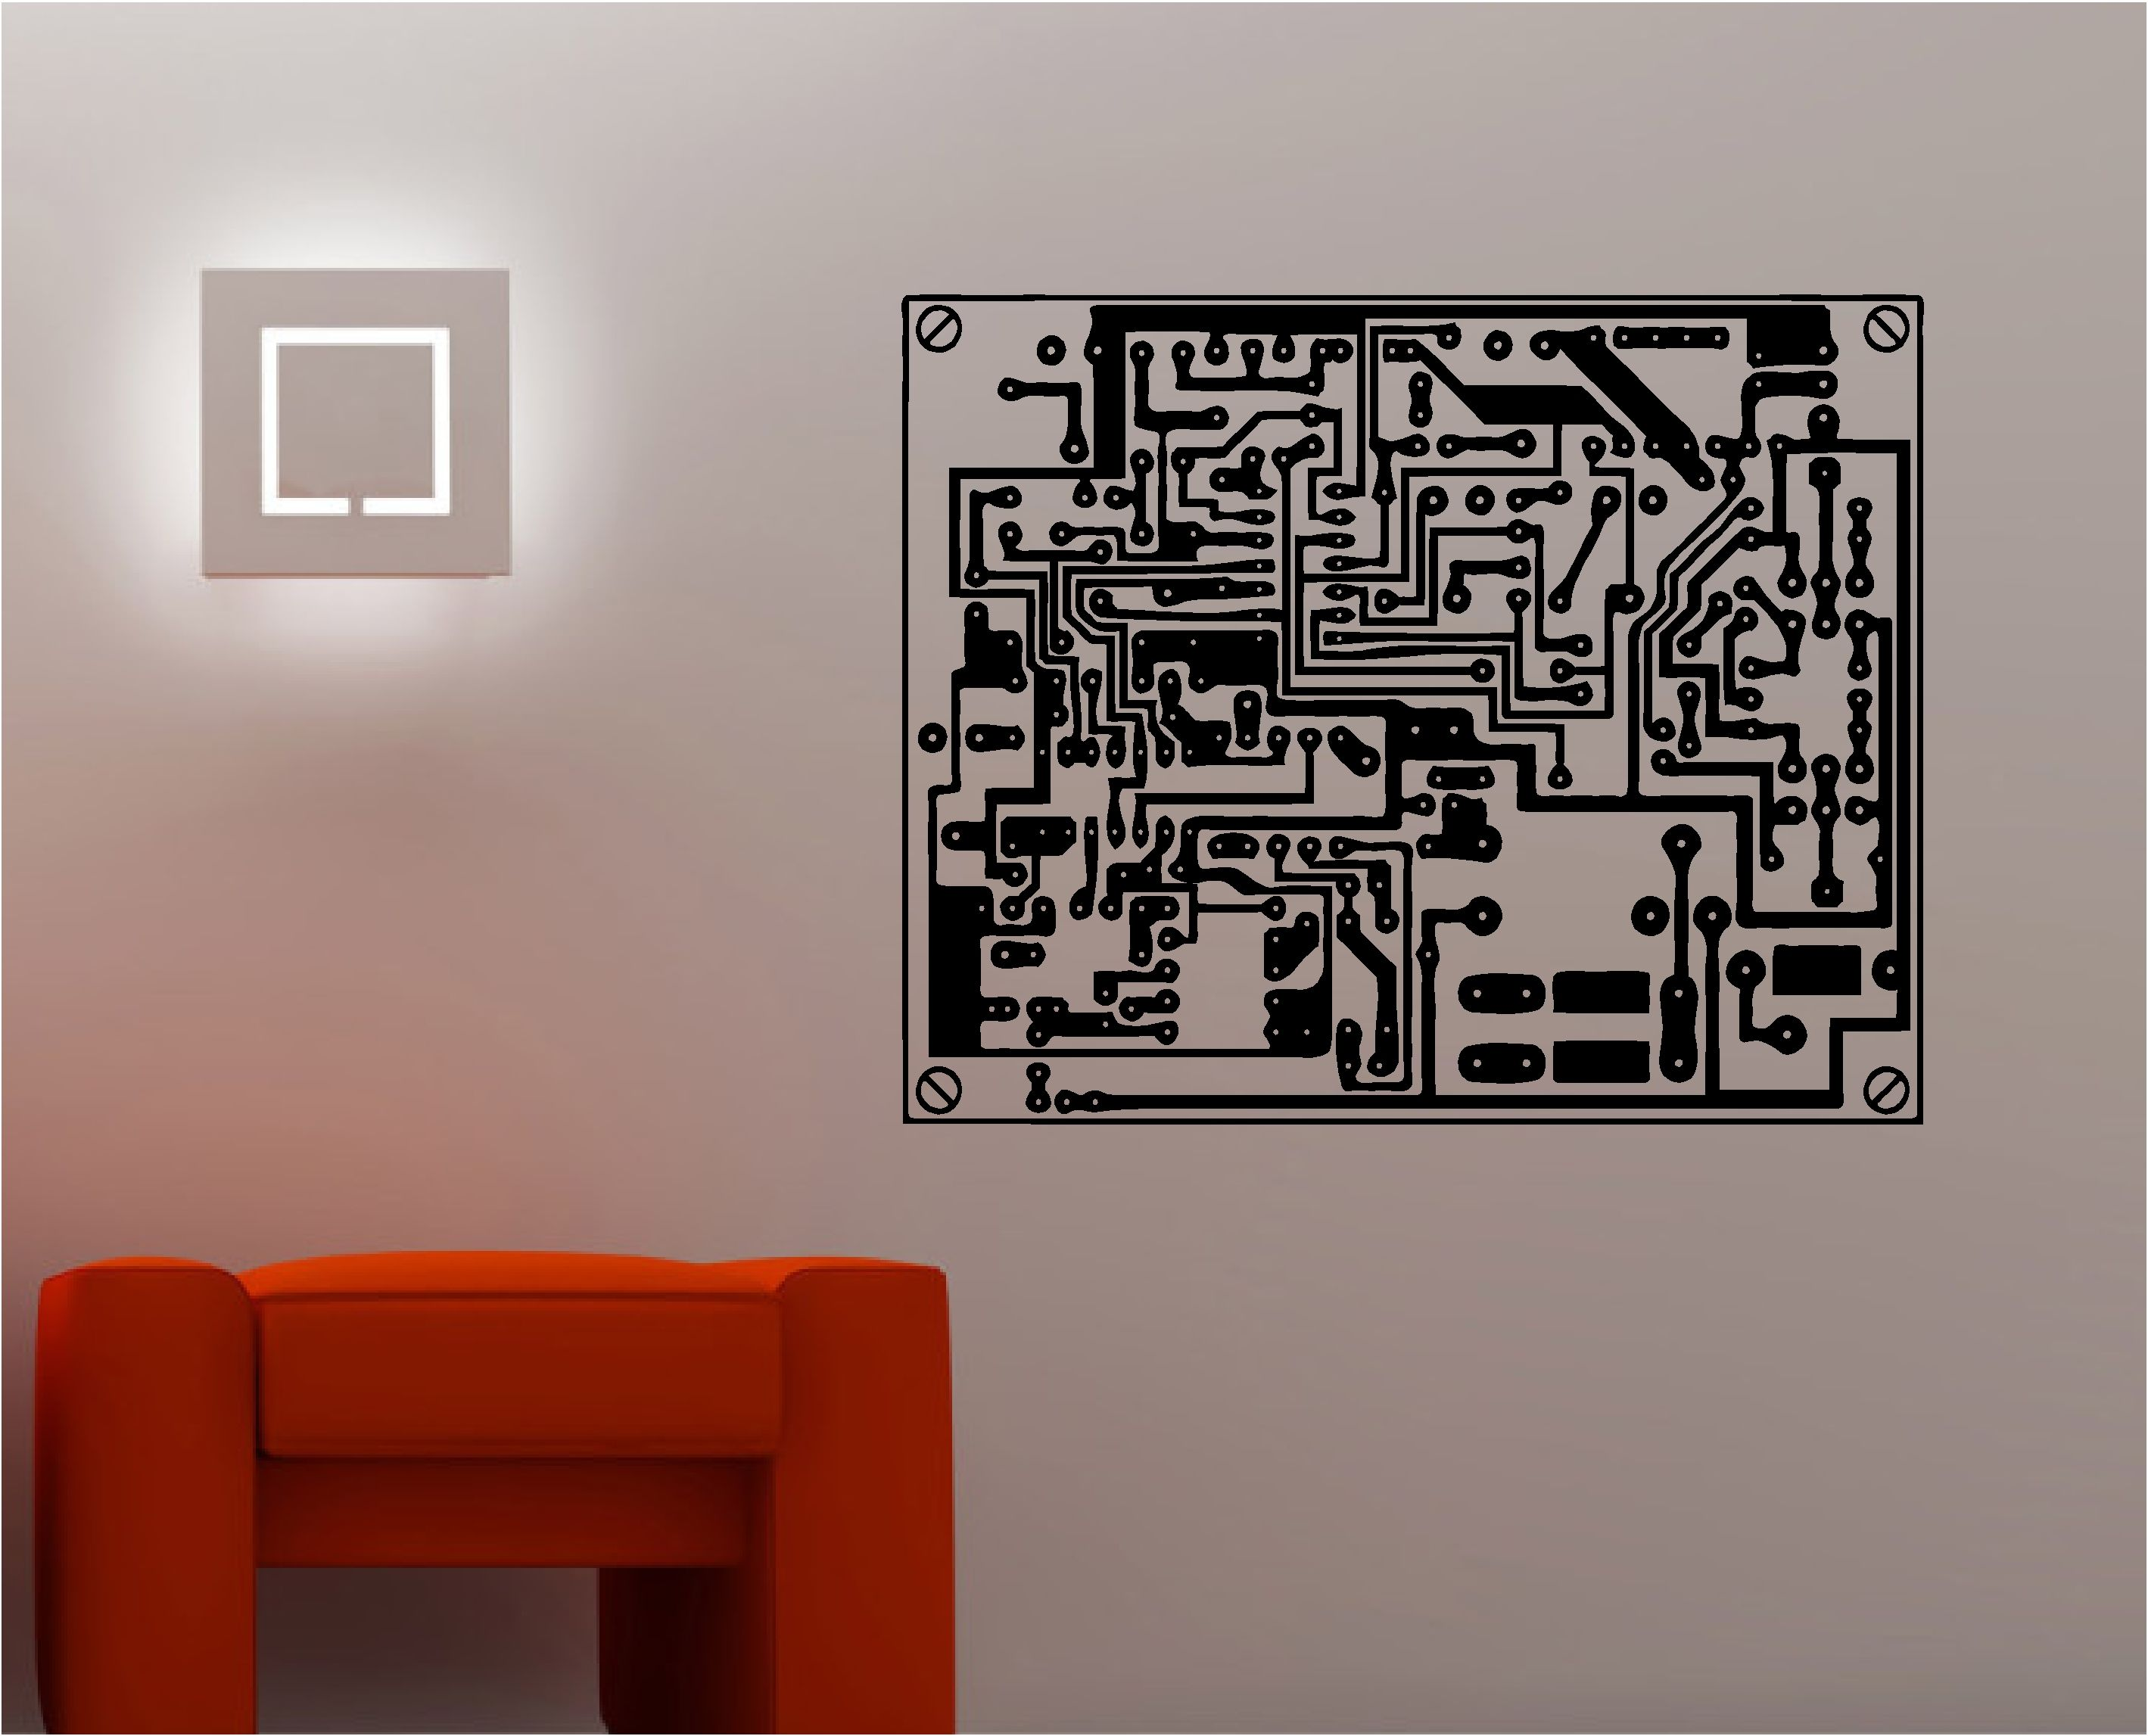 Paint Or Cut Out Large Oversized Circuit Board Pattern For The Backdrop  Walls.